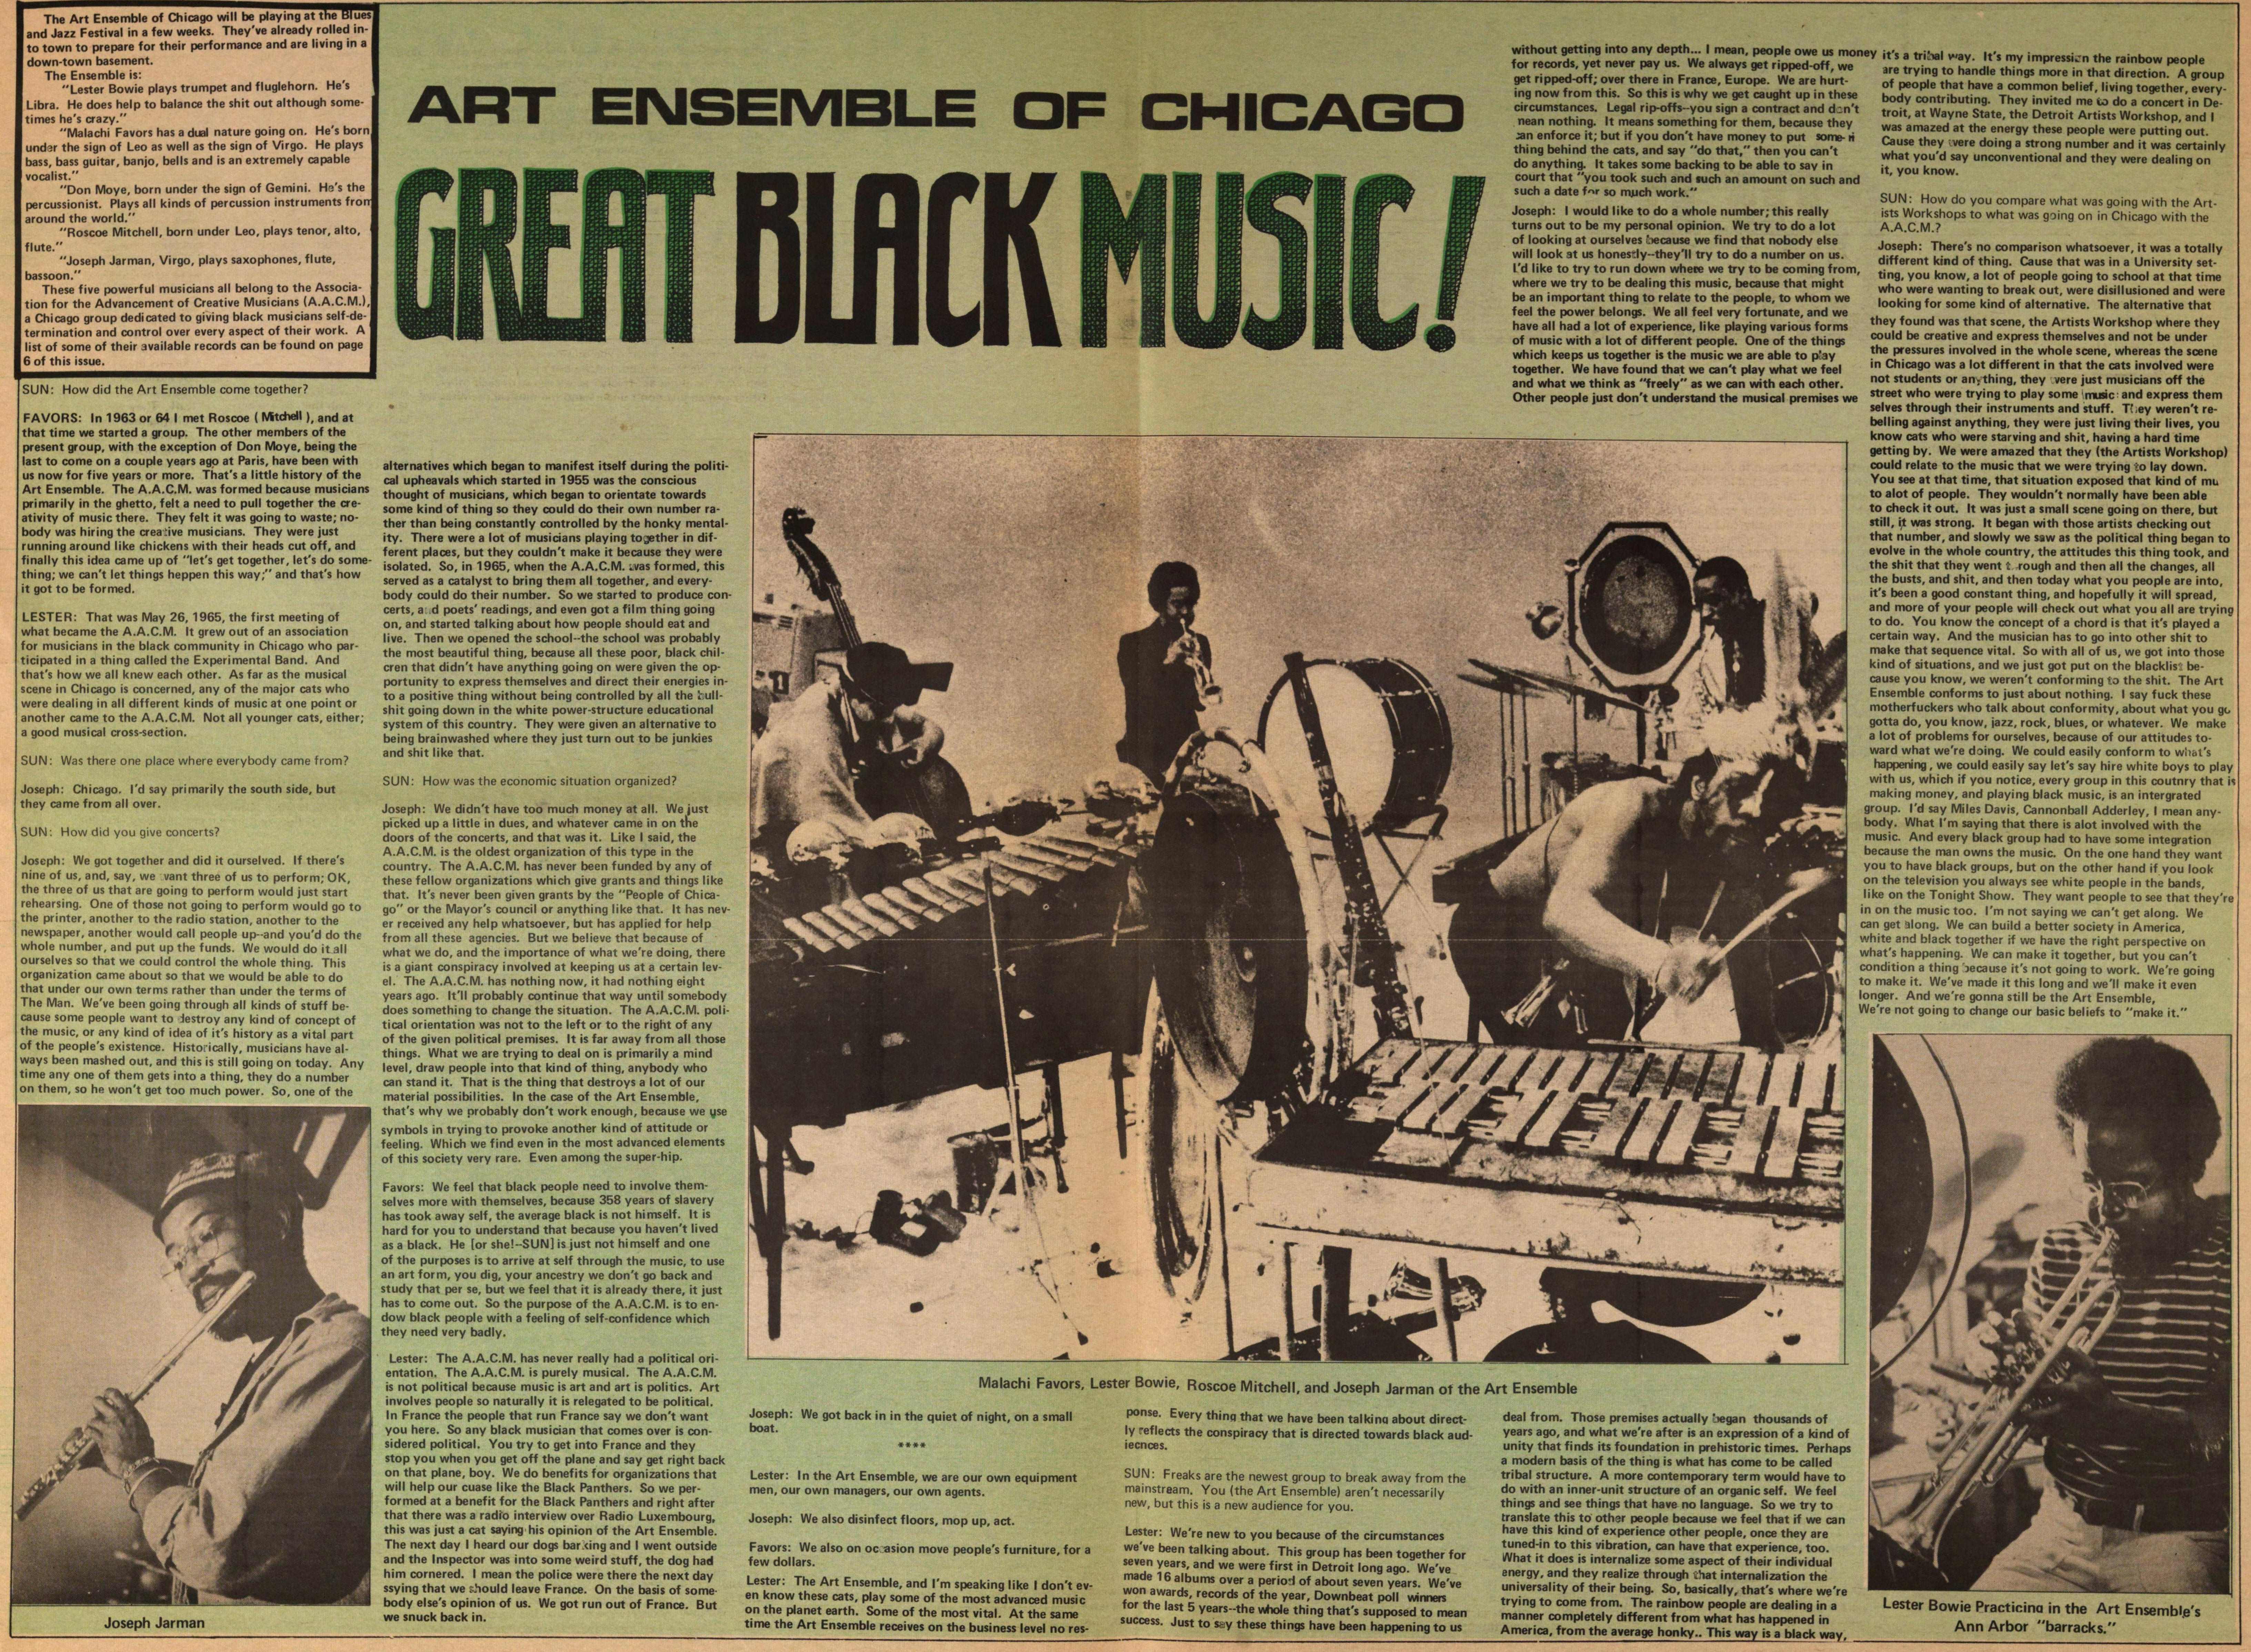 Art Ensemble Of Chicago Great Black Music! image